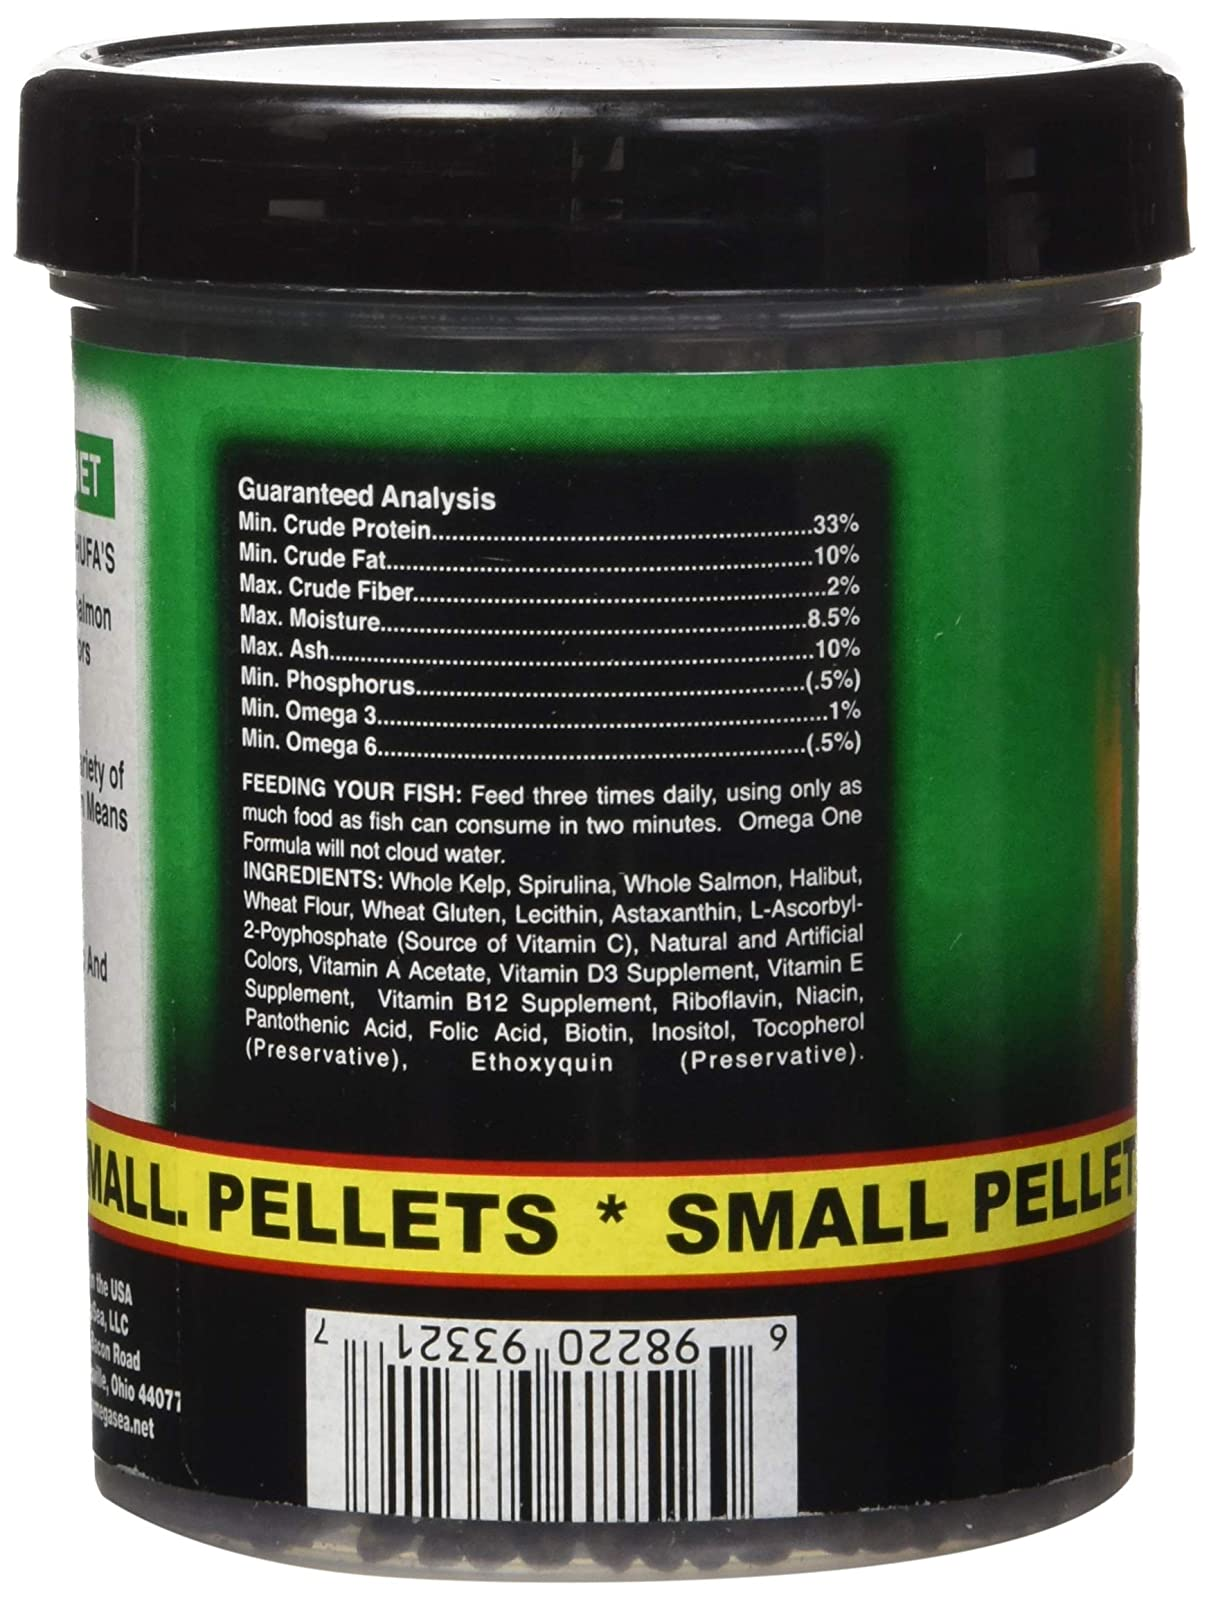 Omega One Super Veggie Pellets Small 3.5oz SHOMHNK004 - 2